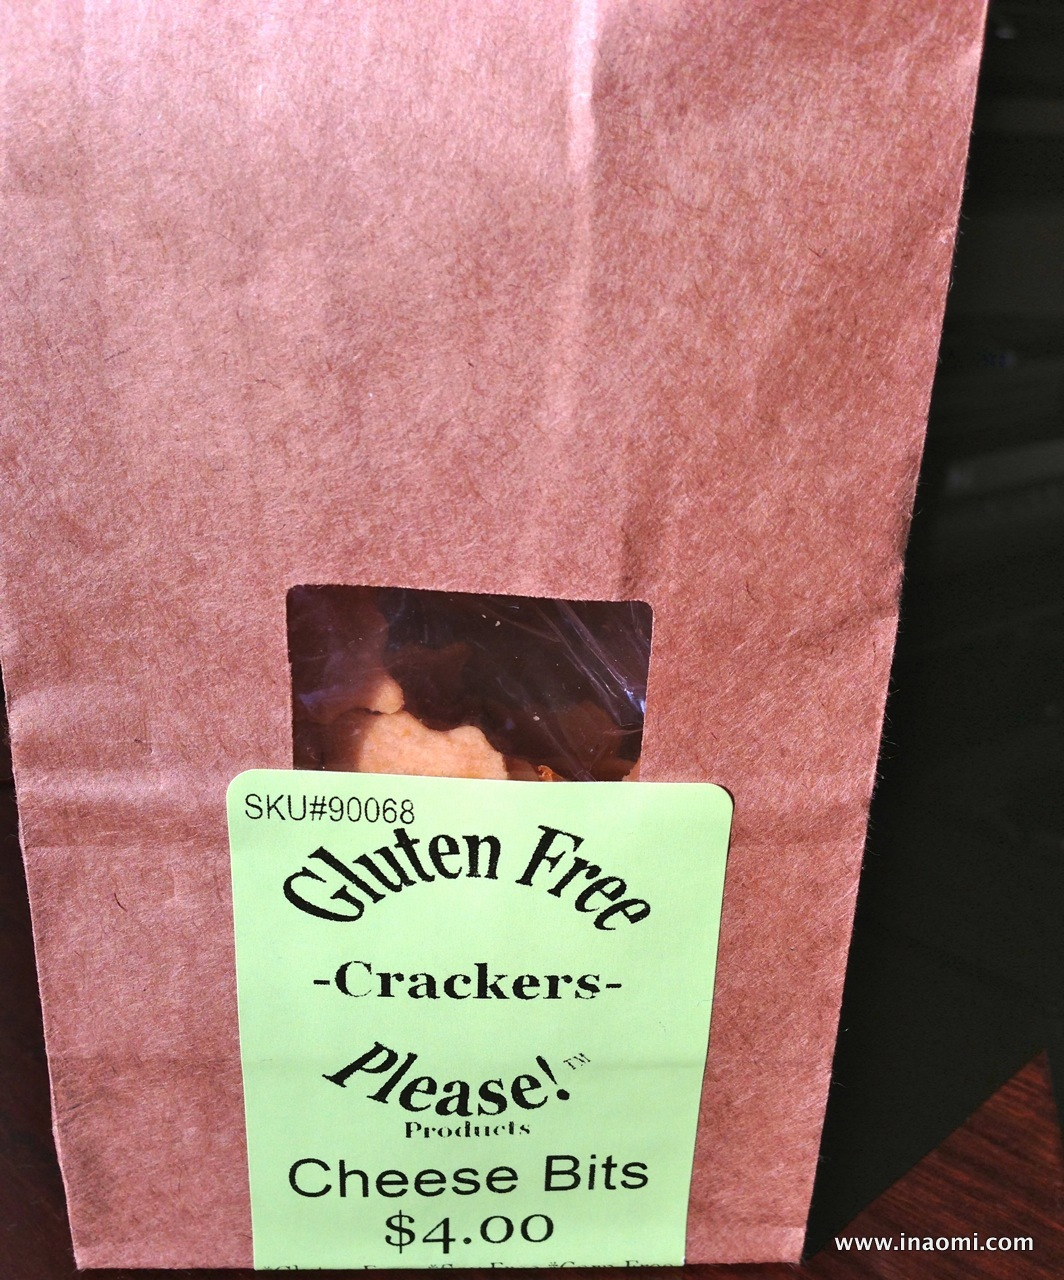 Gluten Free Please Bakery's cheese crackers